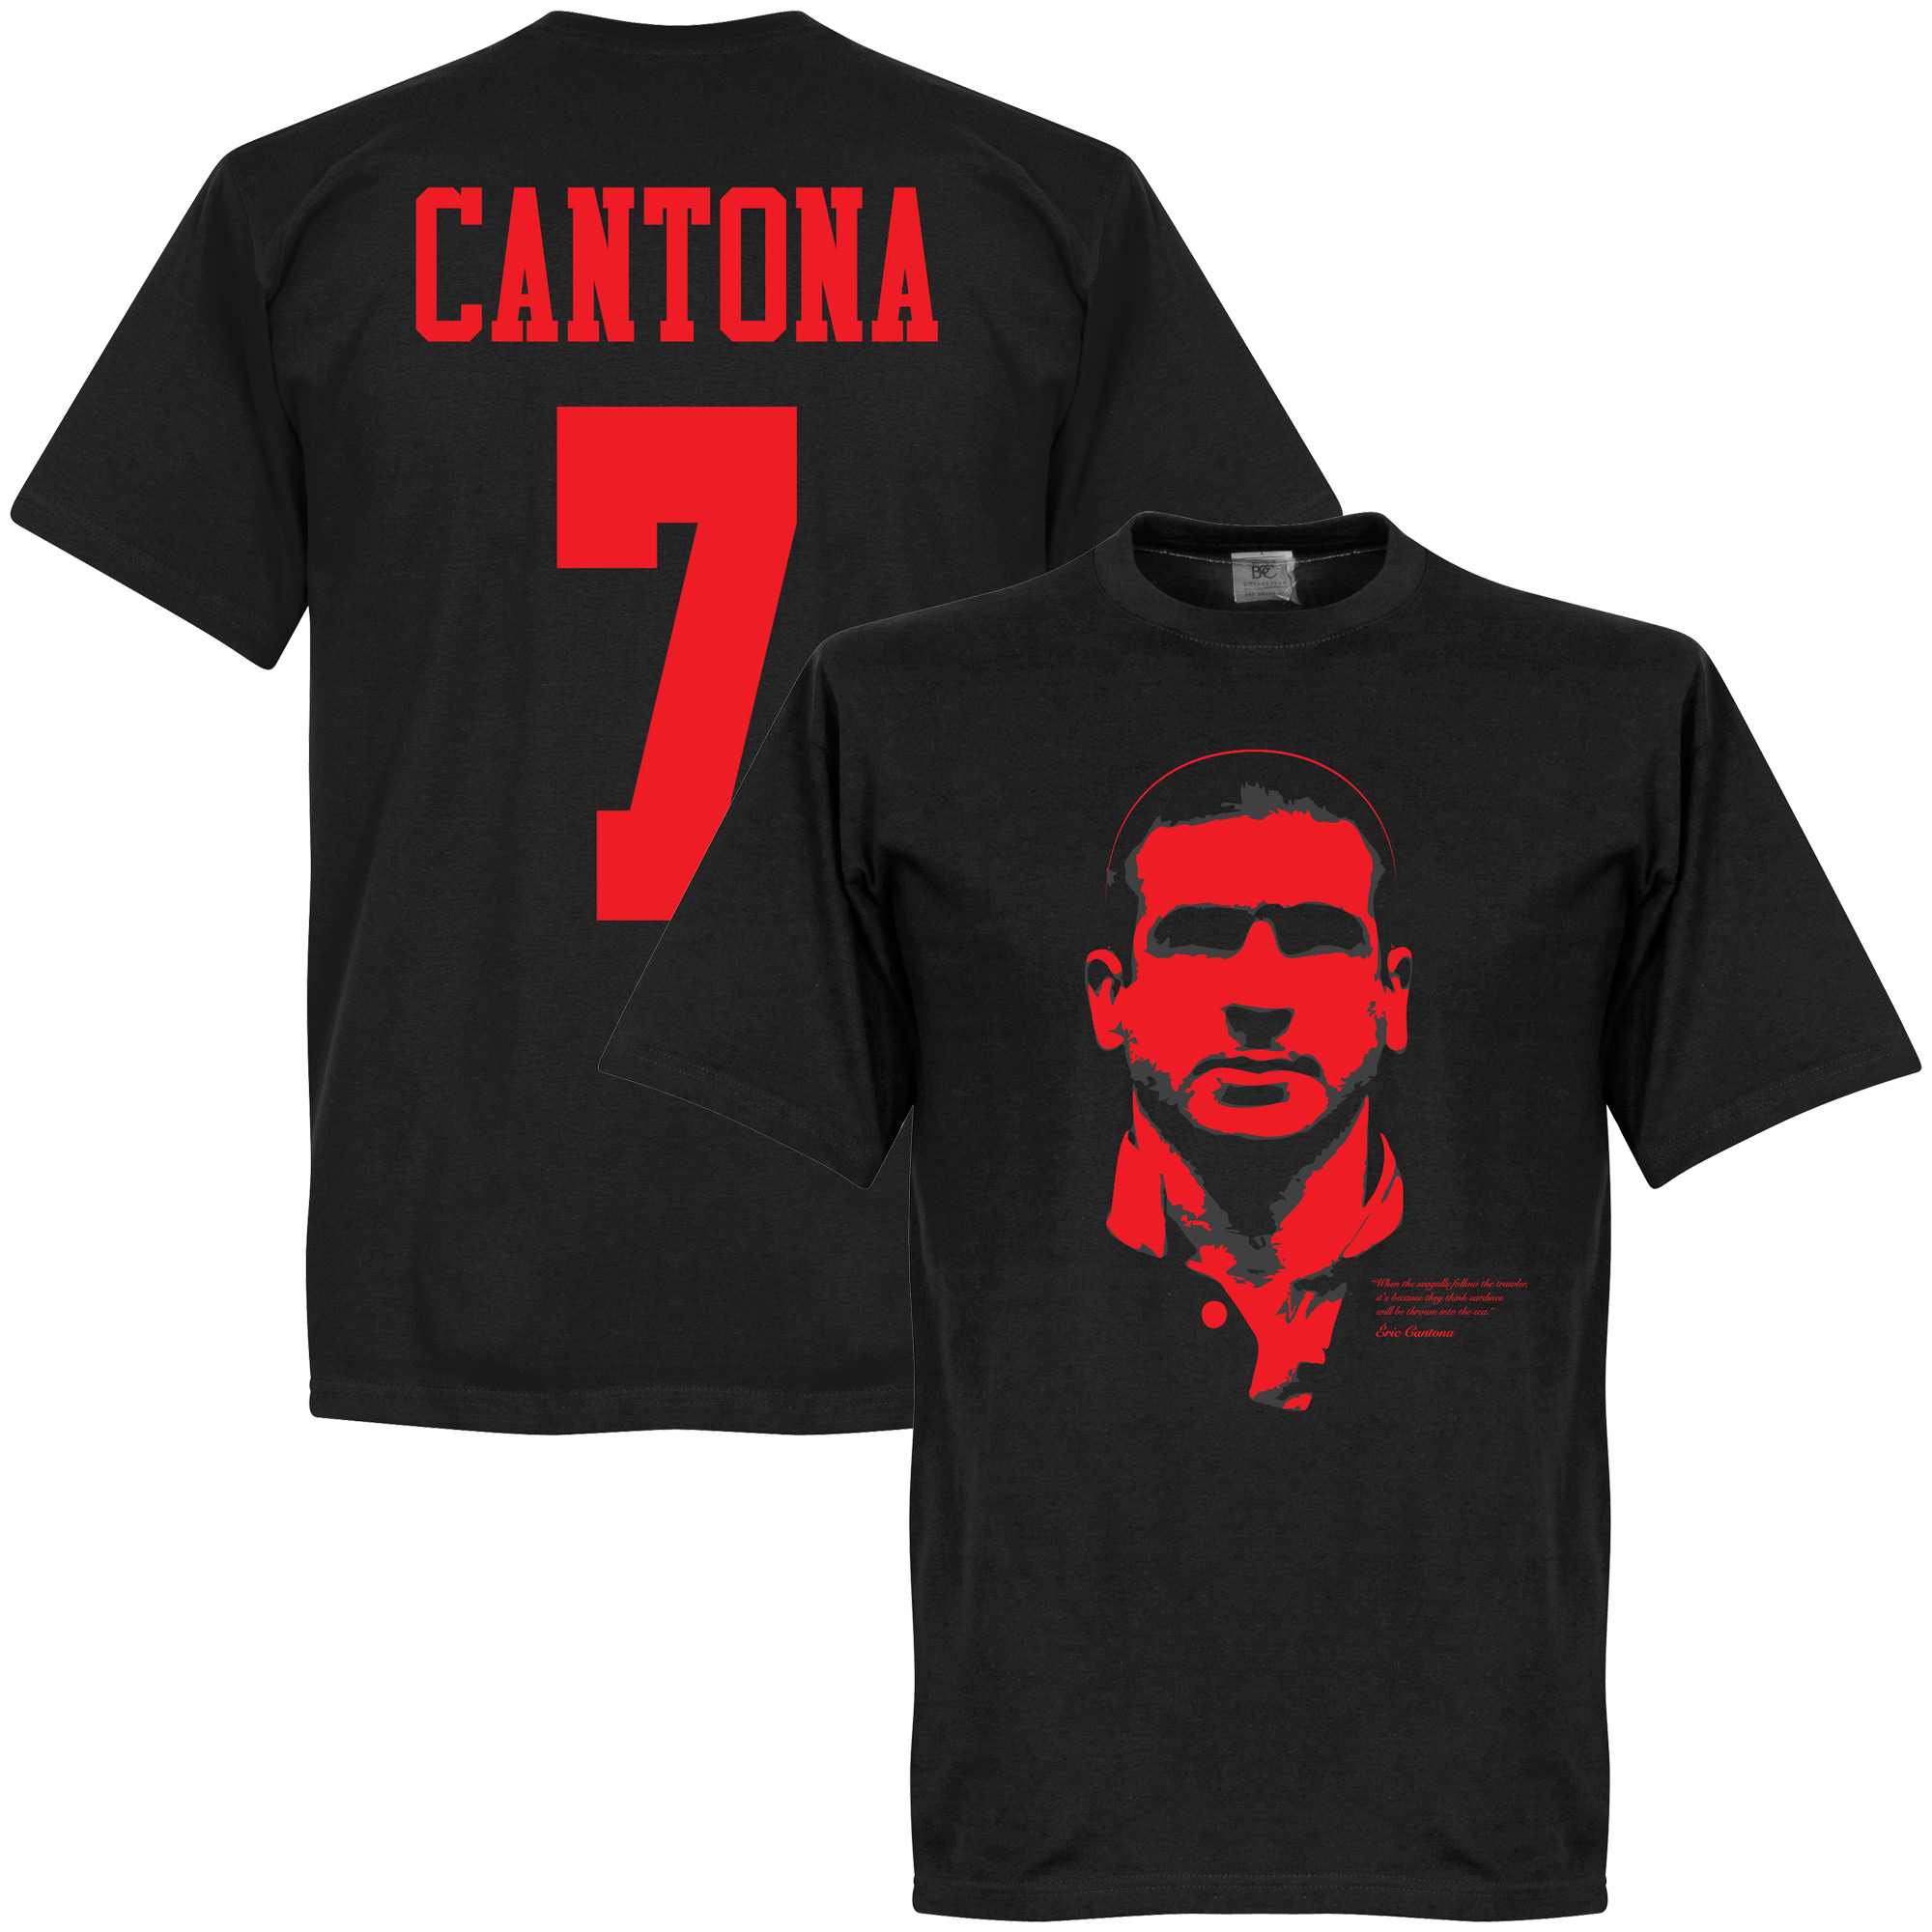 Cantona Silhouette T-shirt - Black/Red - XS